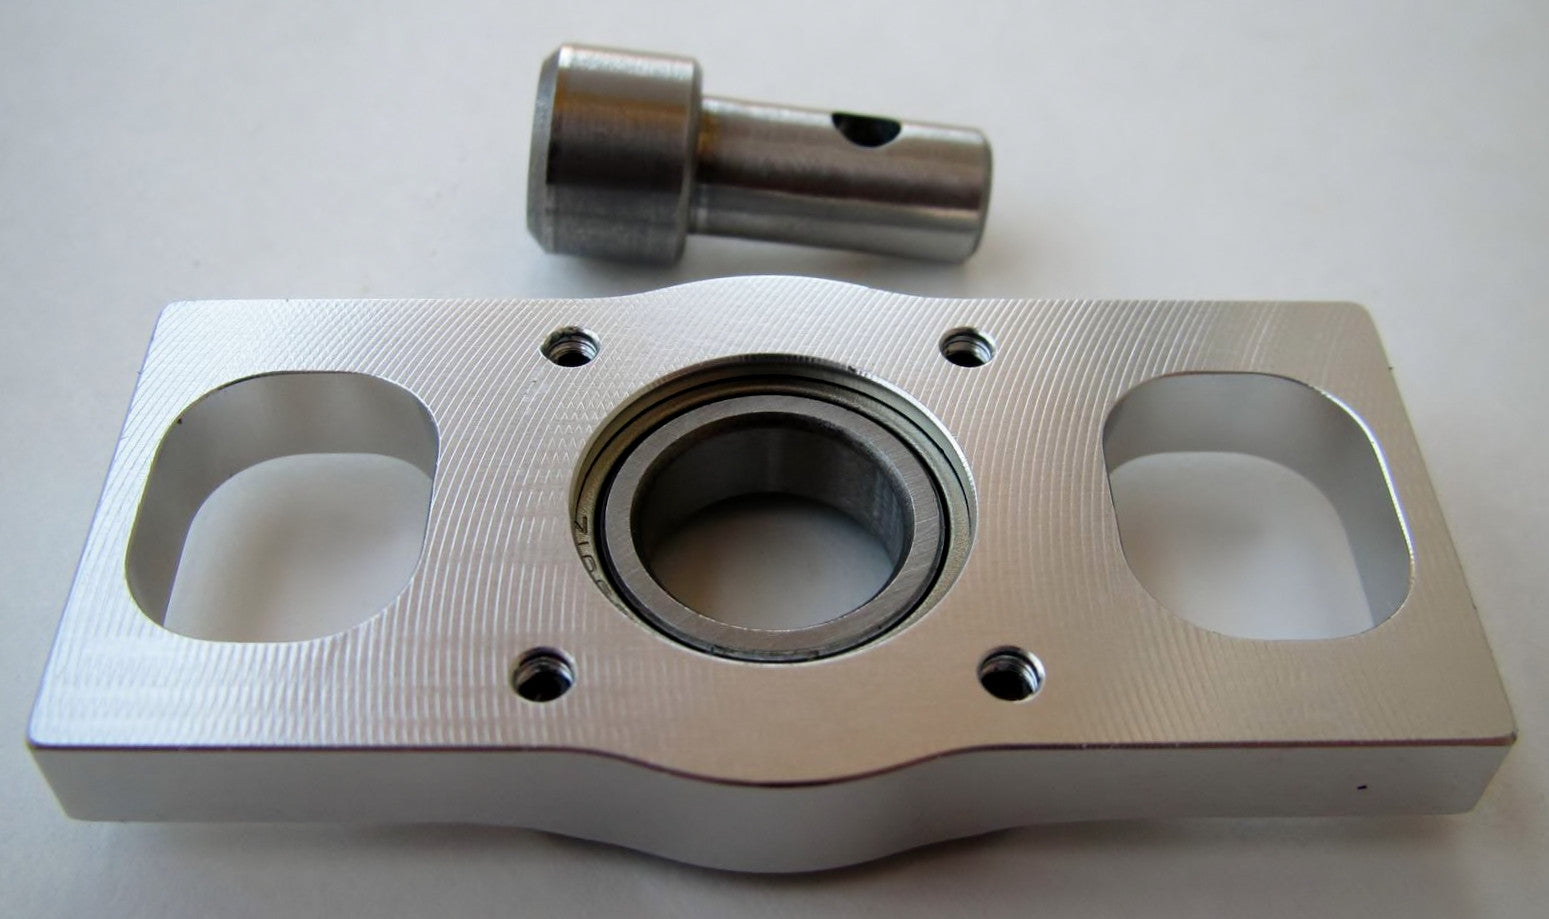 AT700-TBB Triple Bearing Block and Main Shaft Extension for ALIGN T-Rex  700/800 Series Helicopters